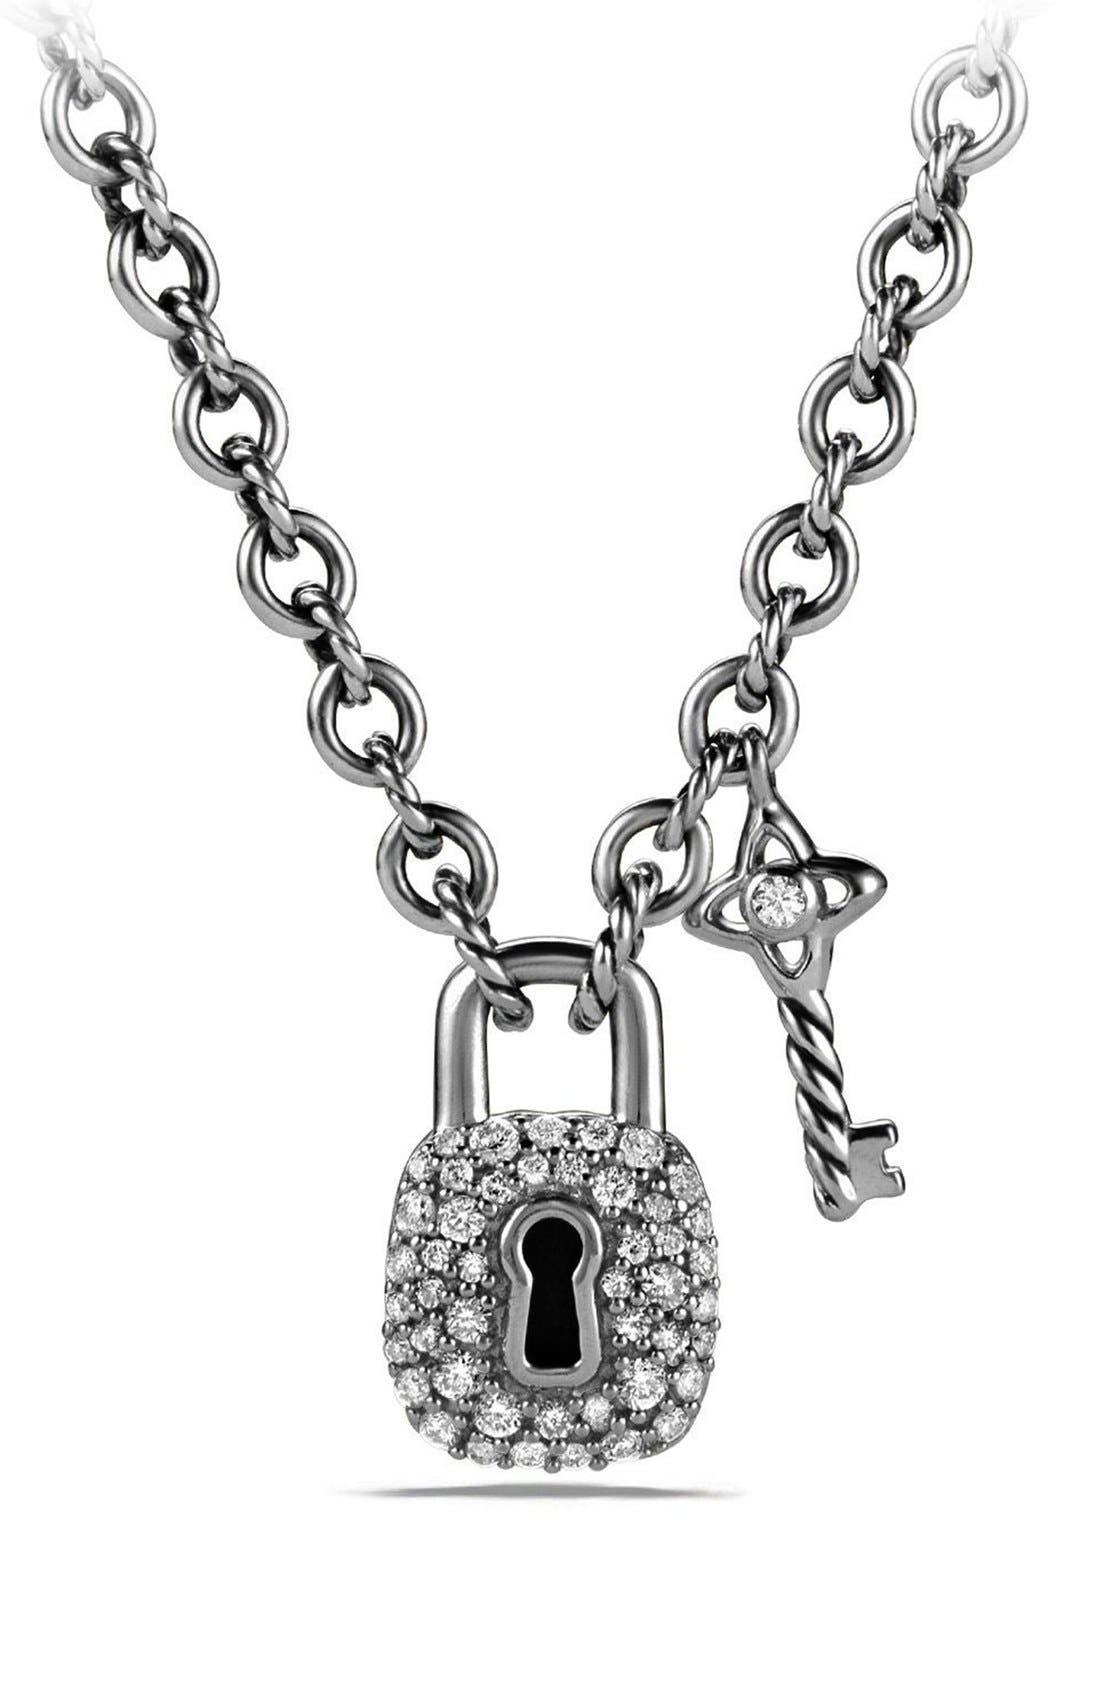 Main Image - David Yurman 'Cable Collectibles®' Lock and Key Charm Necklace with Diamonds